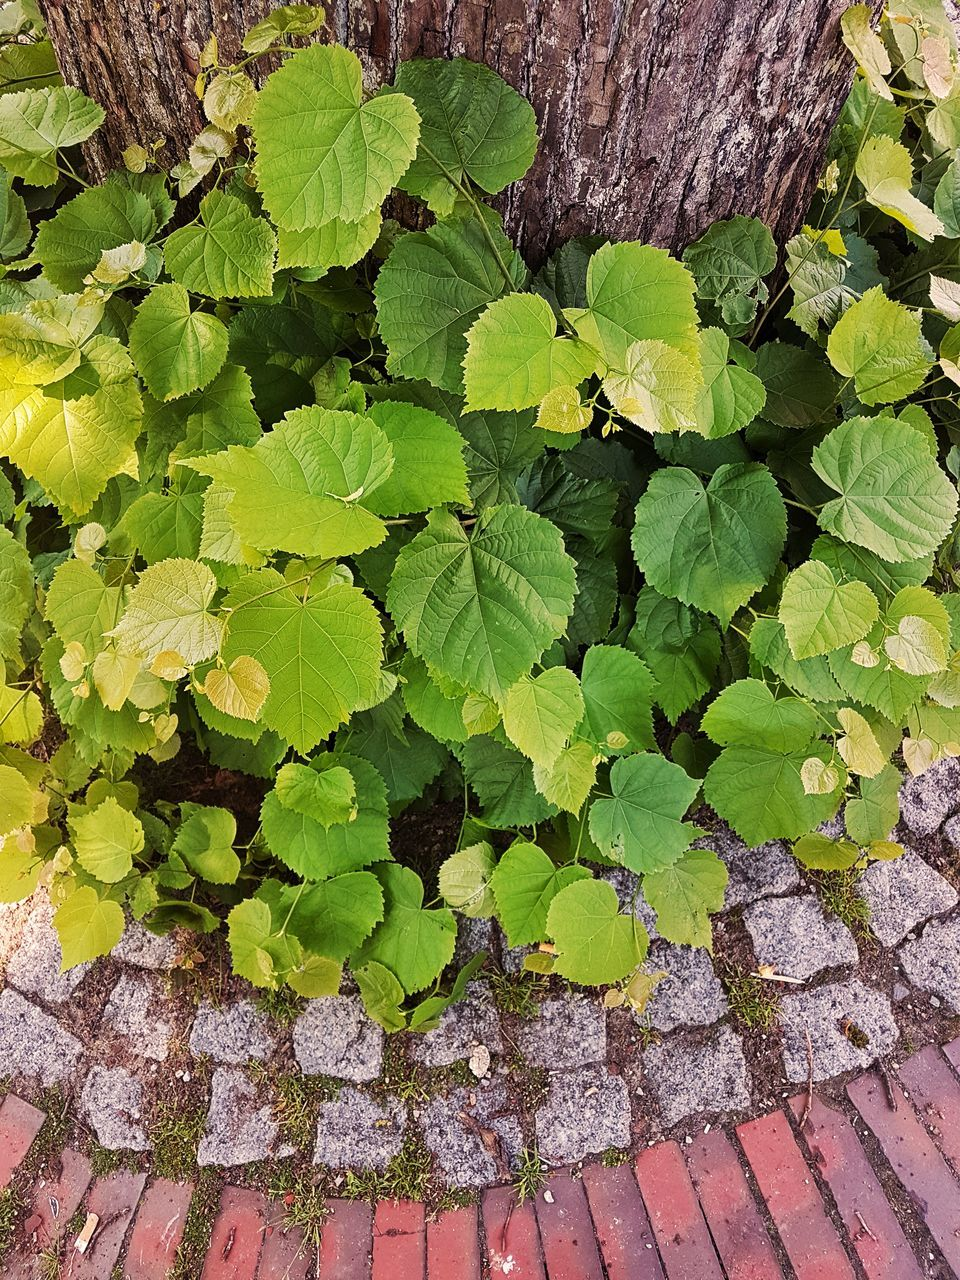 leaf, green color, plant, growth, day, outdoors, no people, ivy, nature, close-up